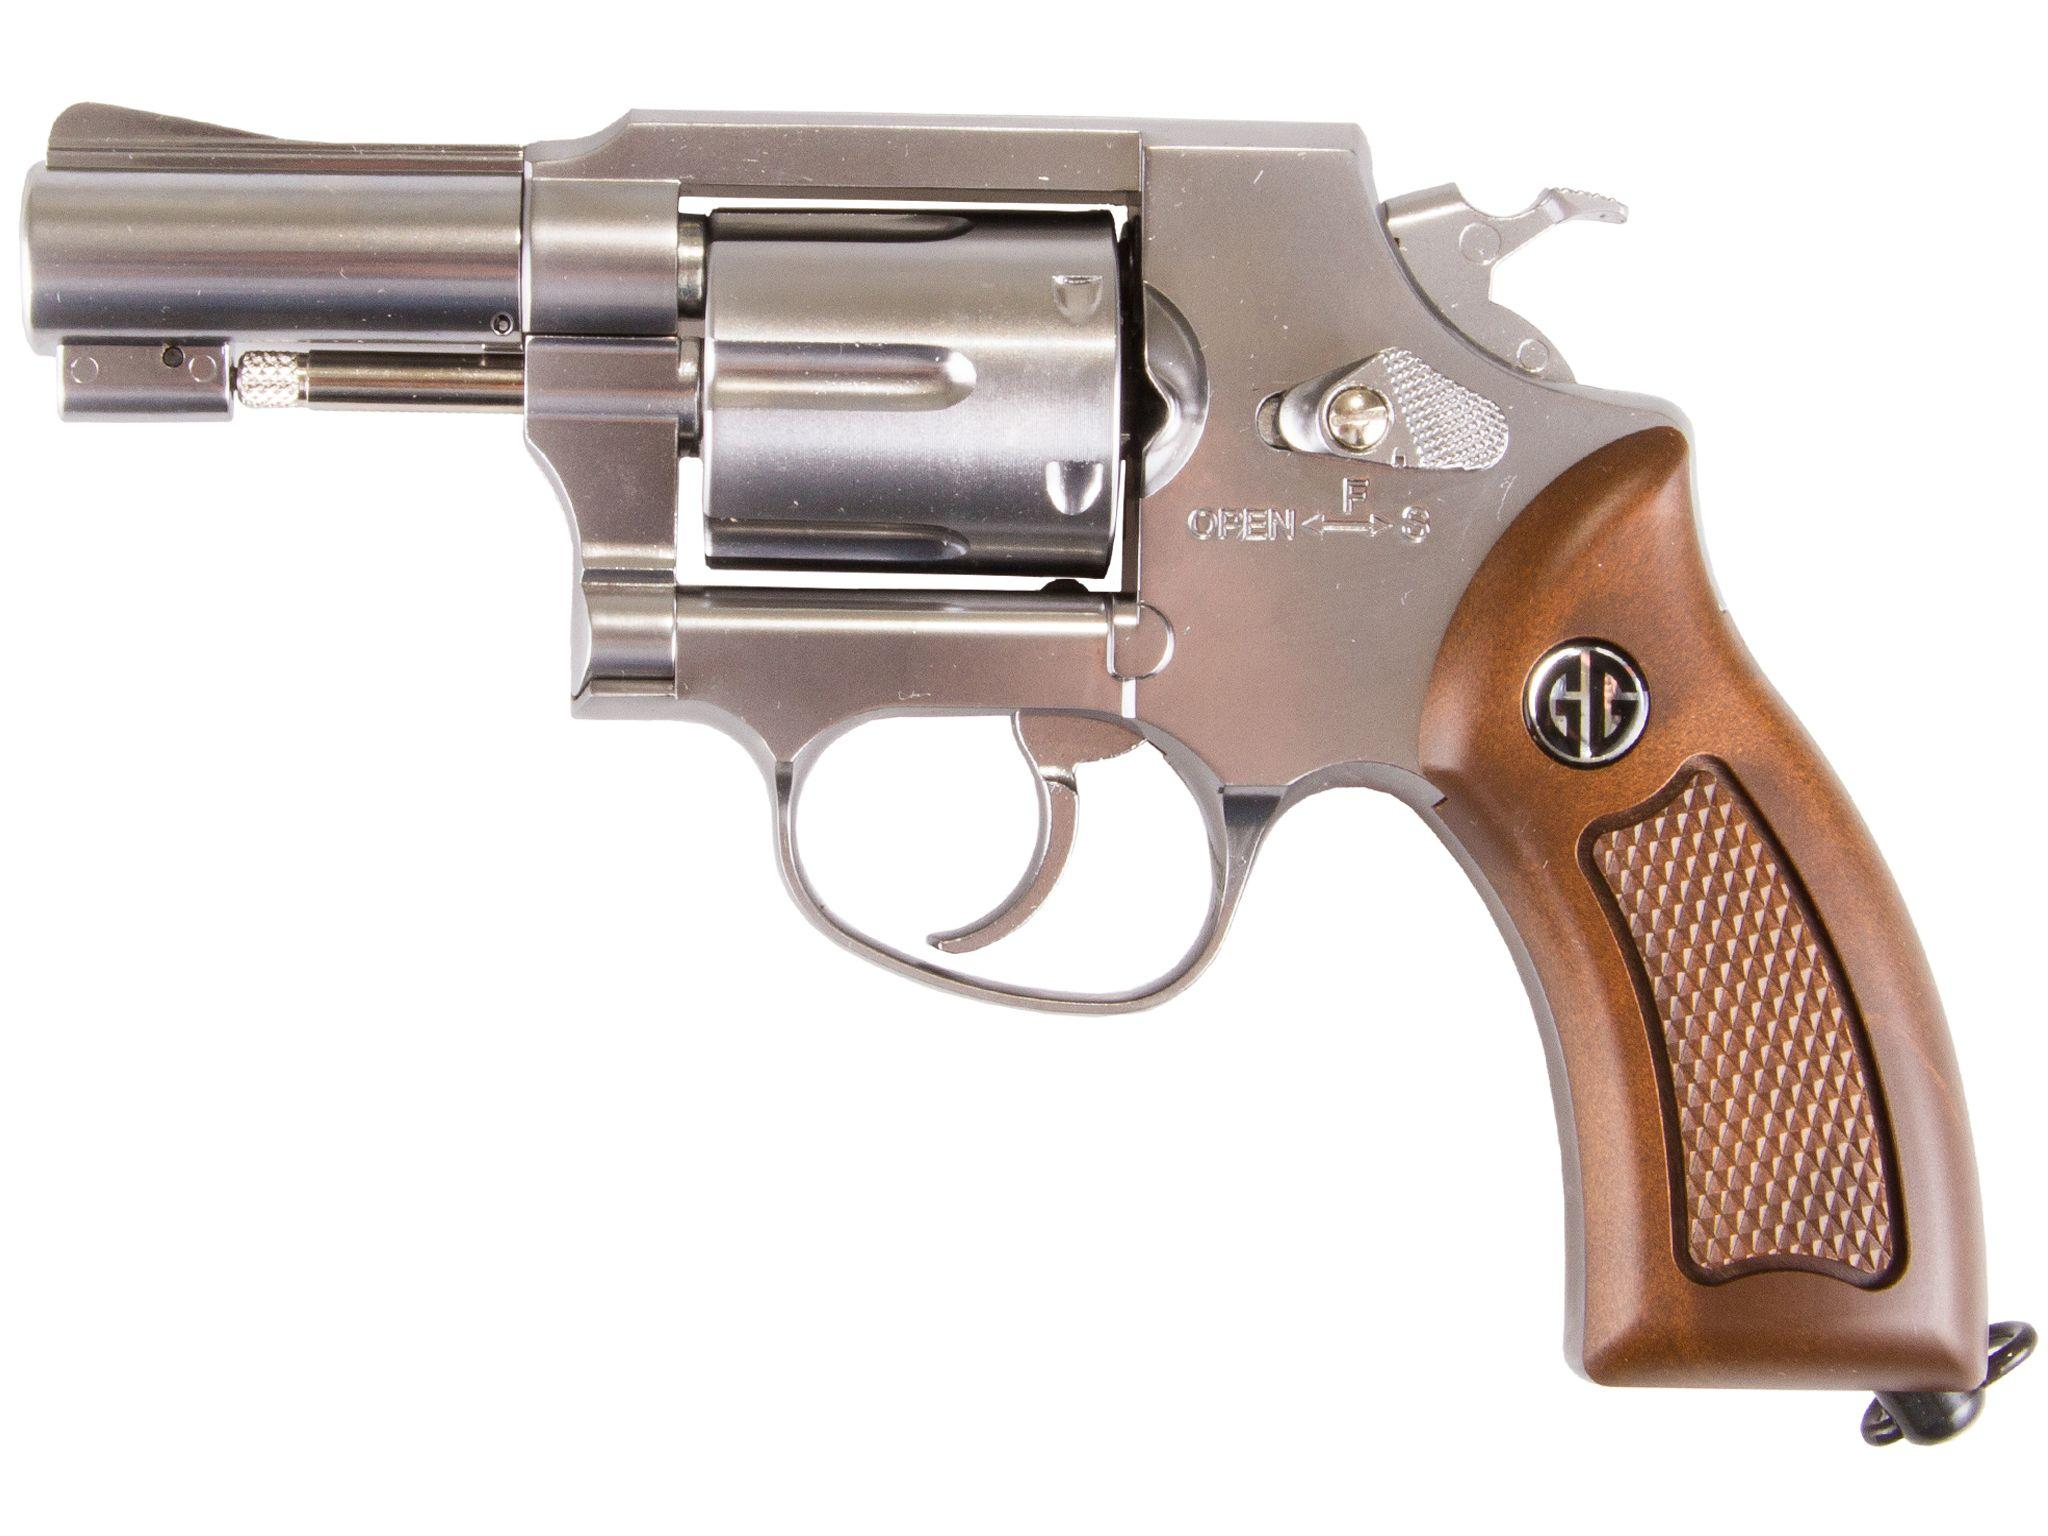 G&G Silver G731 CO2 NBB Airsoft Revolver